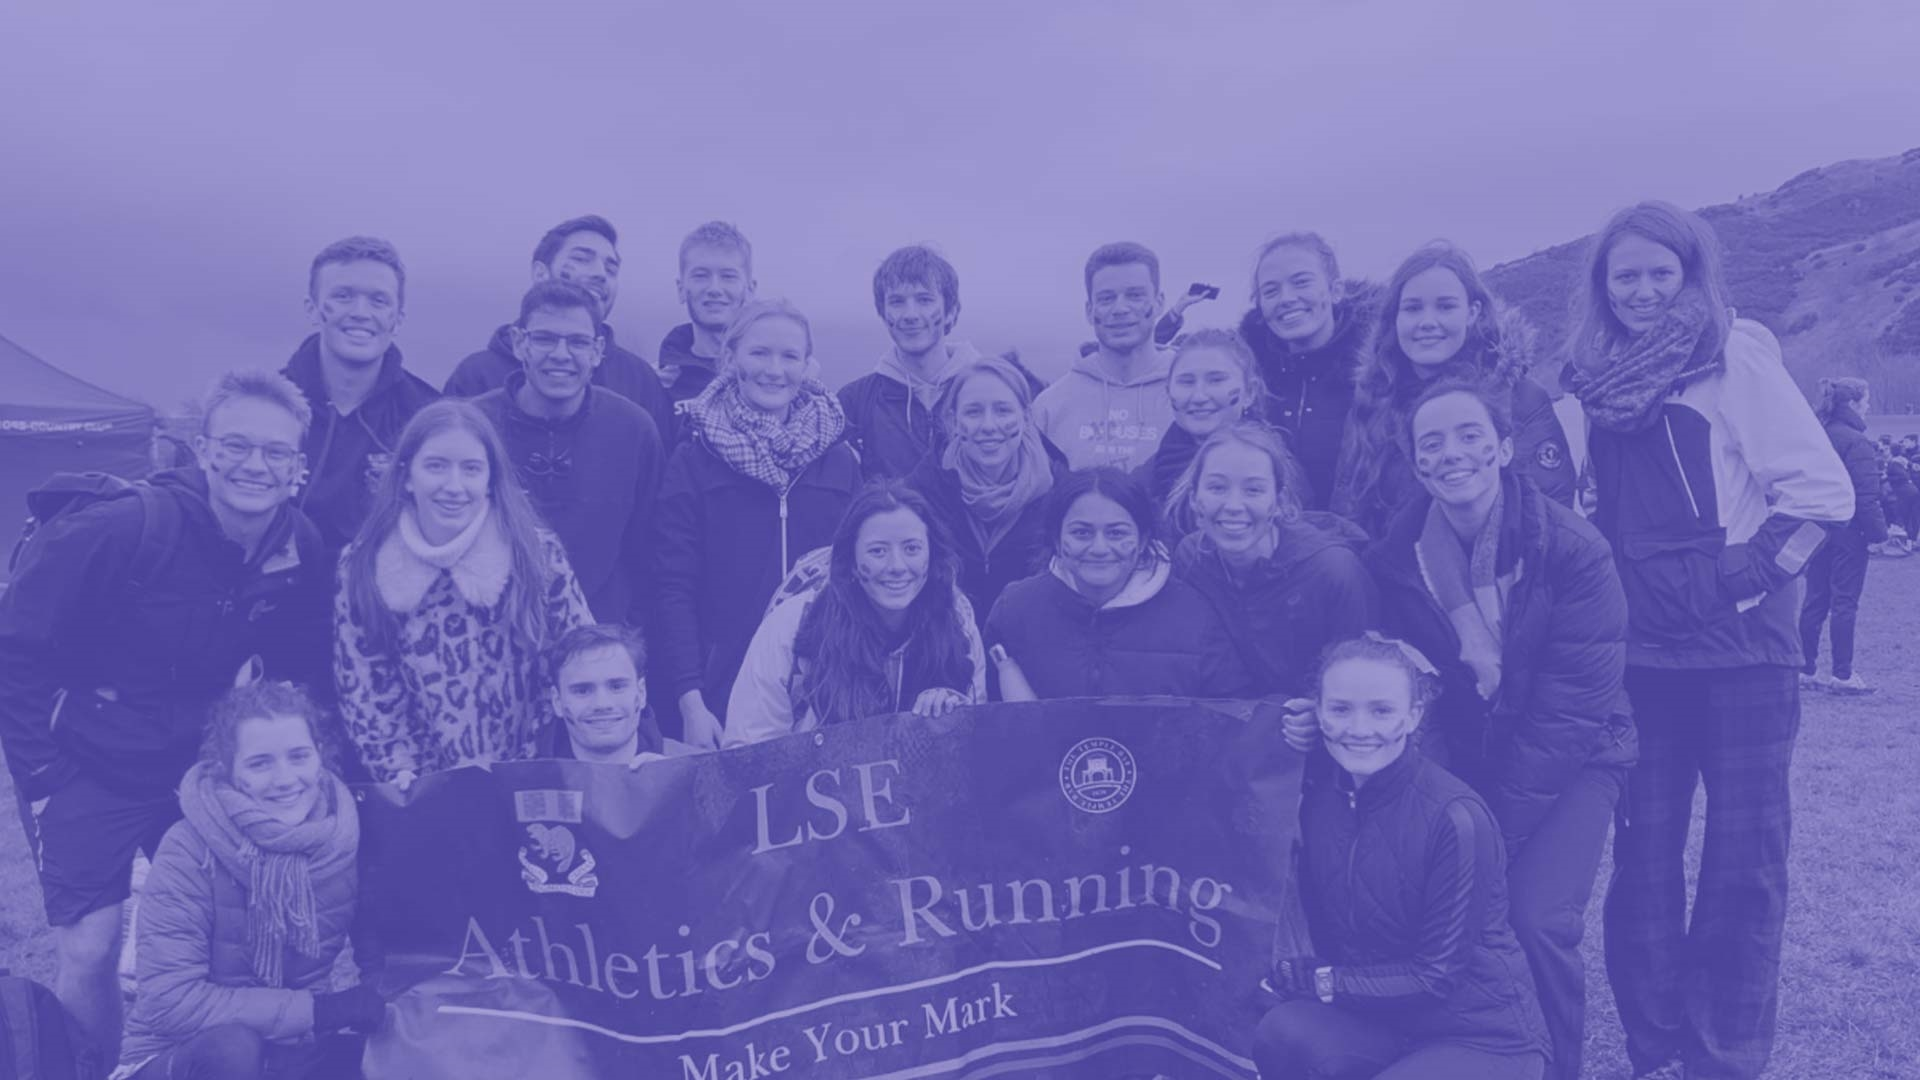 LSE Athletics & Running group